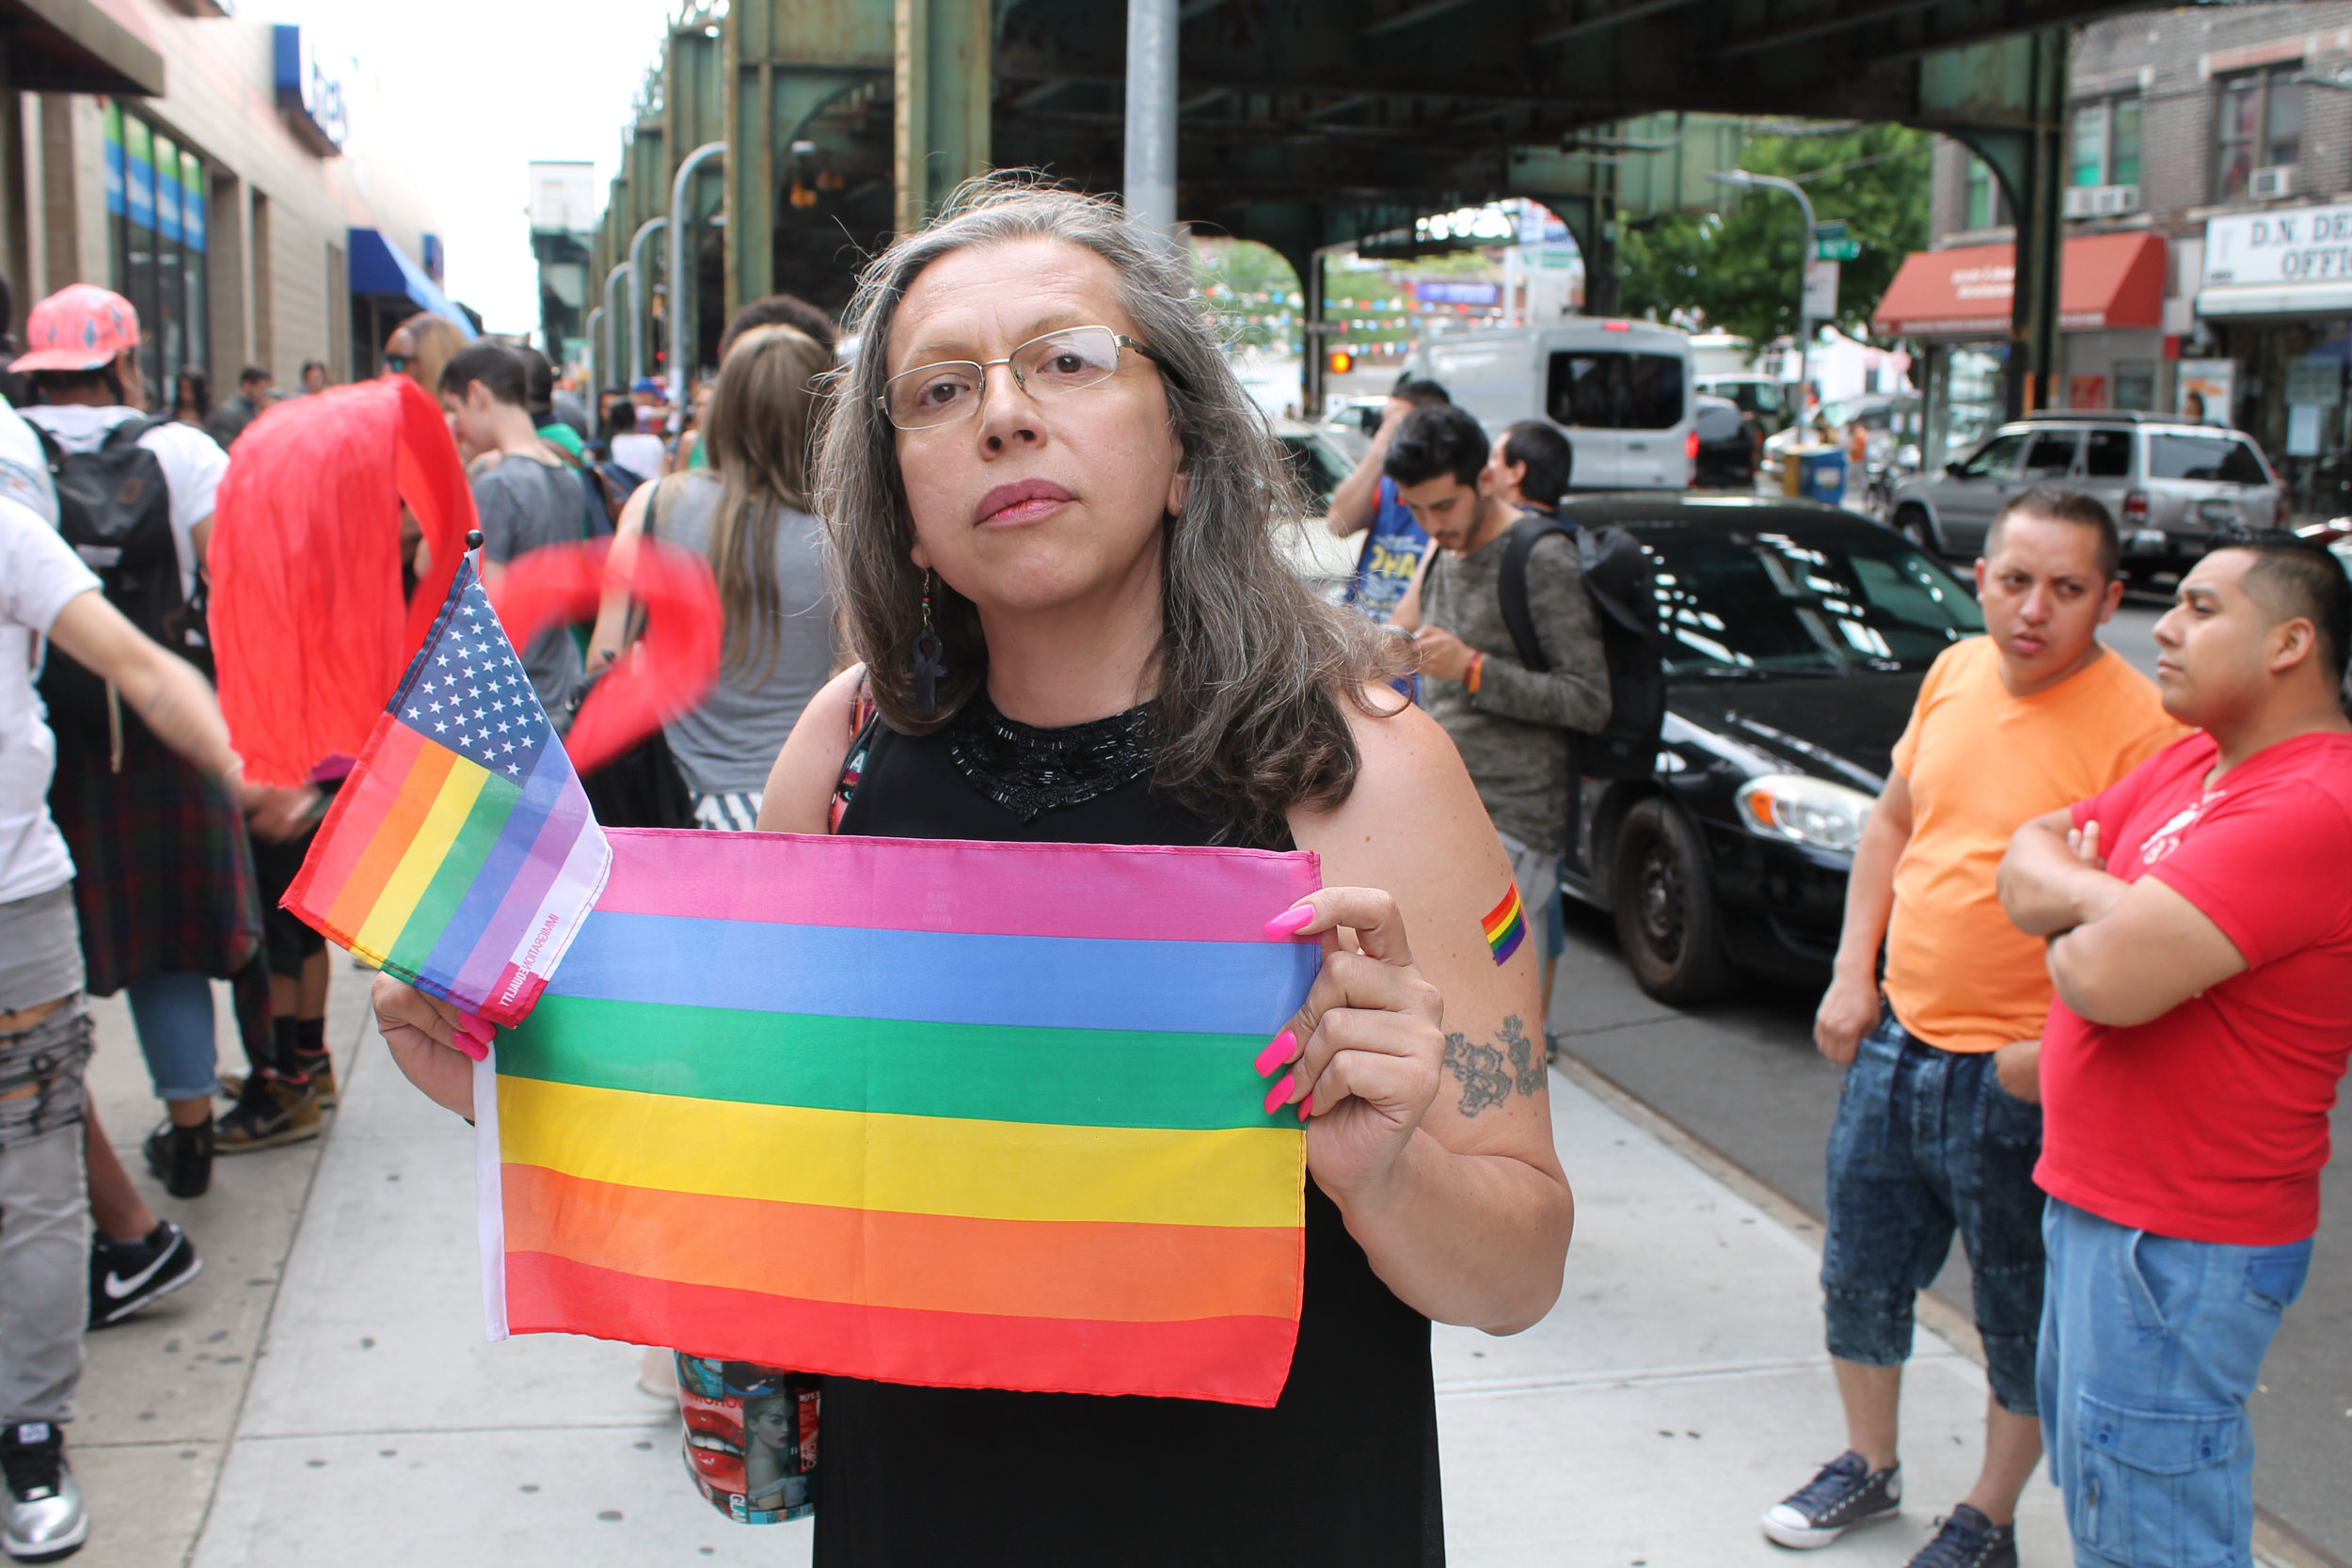 Brooke Cerda Guzmán  in Jackson Heights, Queens, in 2016, at a community event following the massacre at the  Pulse night club  in Orlando, Florida. Source : Louis Flores/Progress Queens